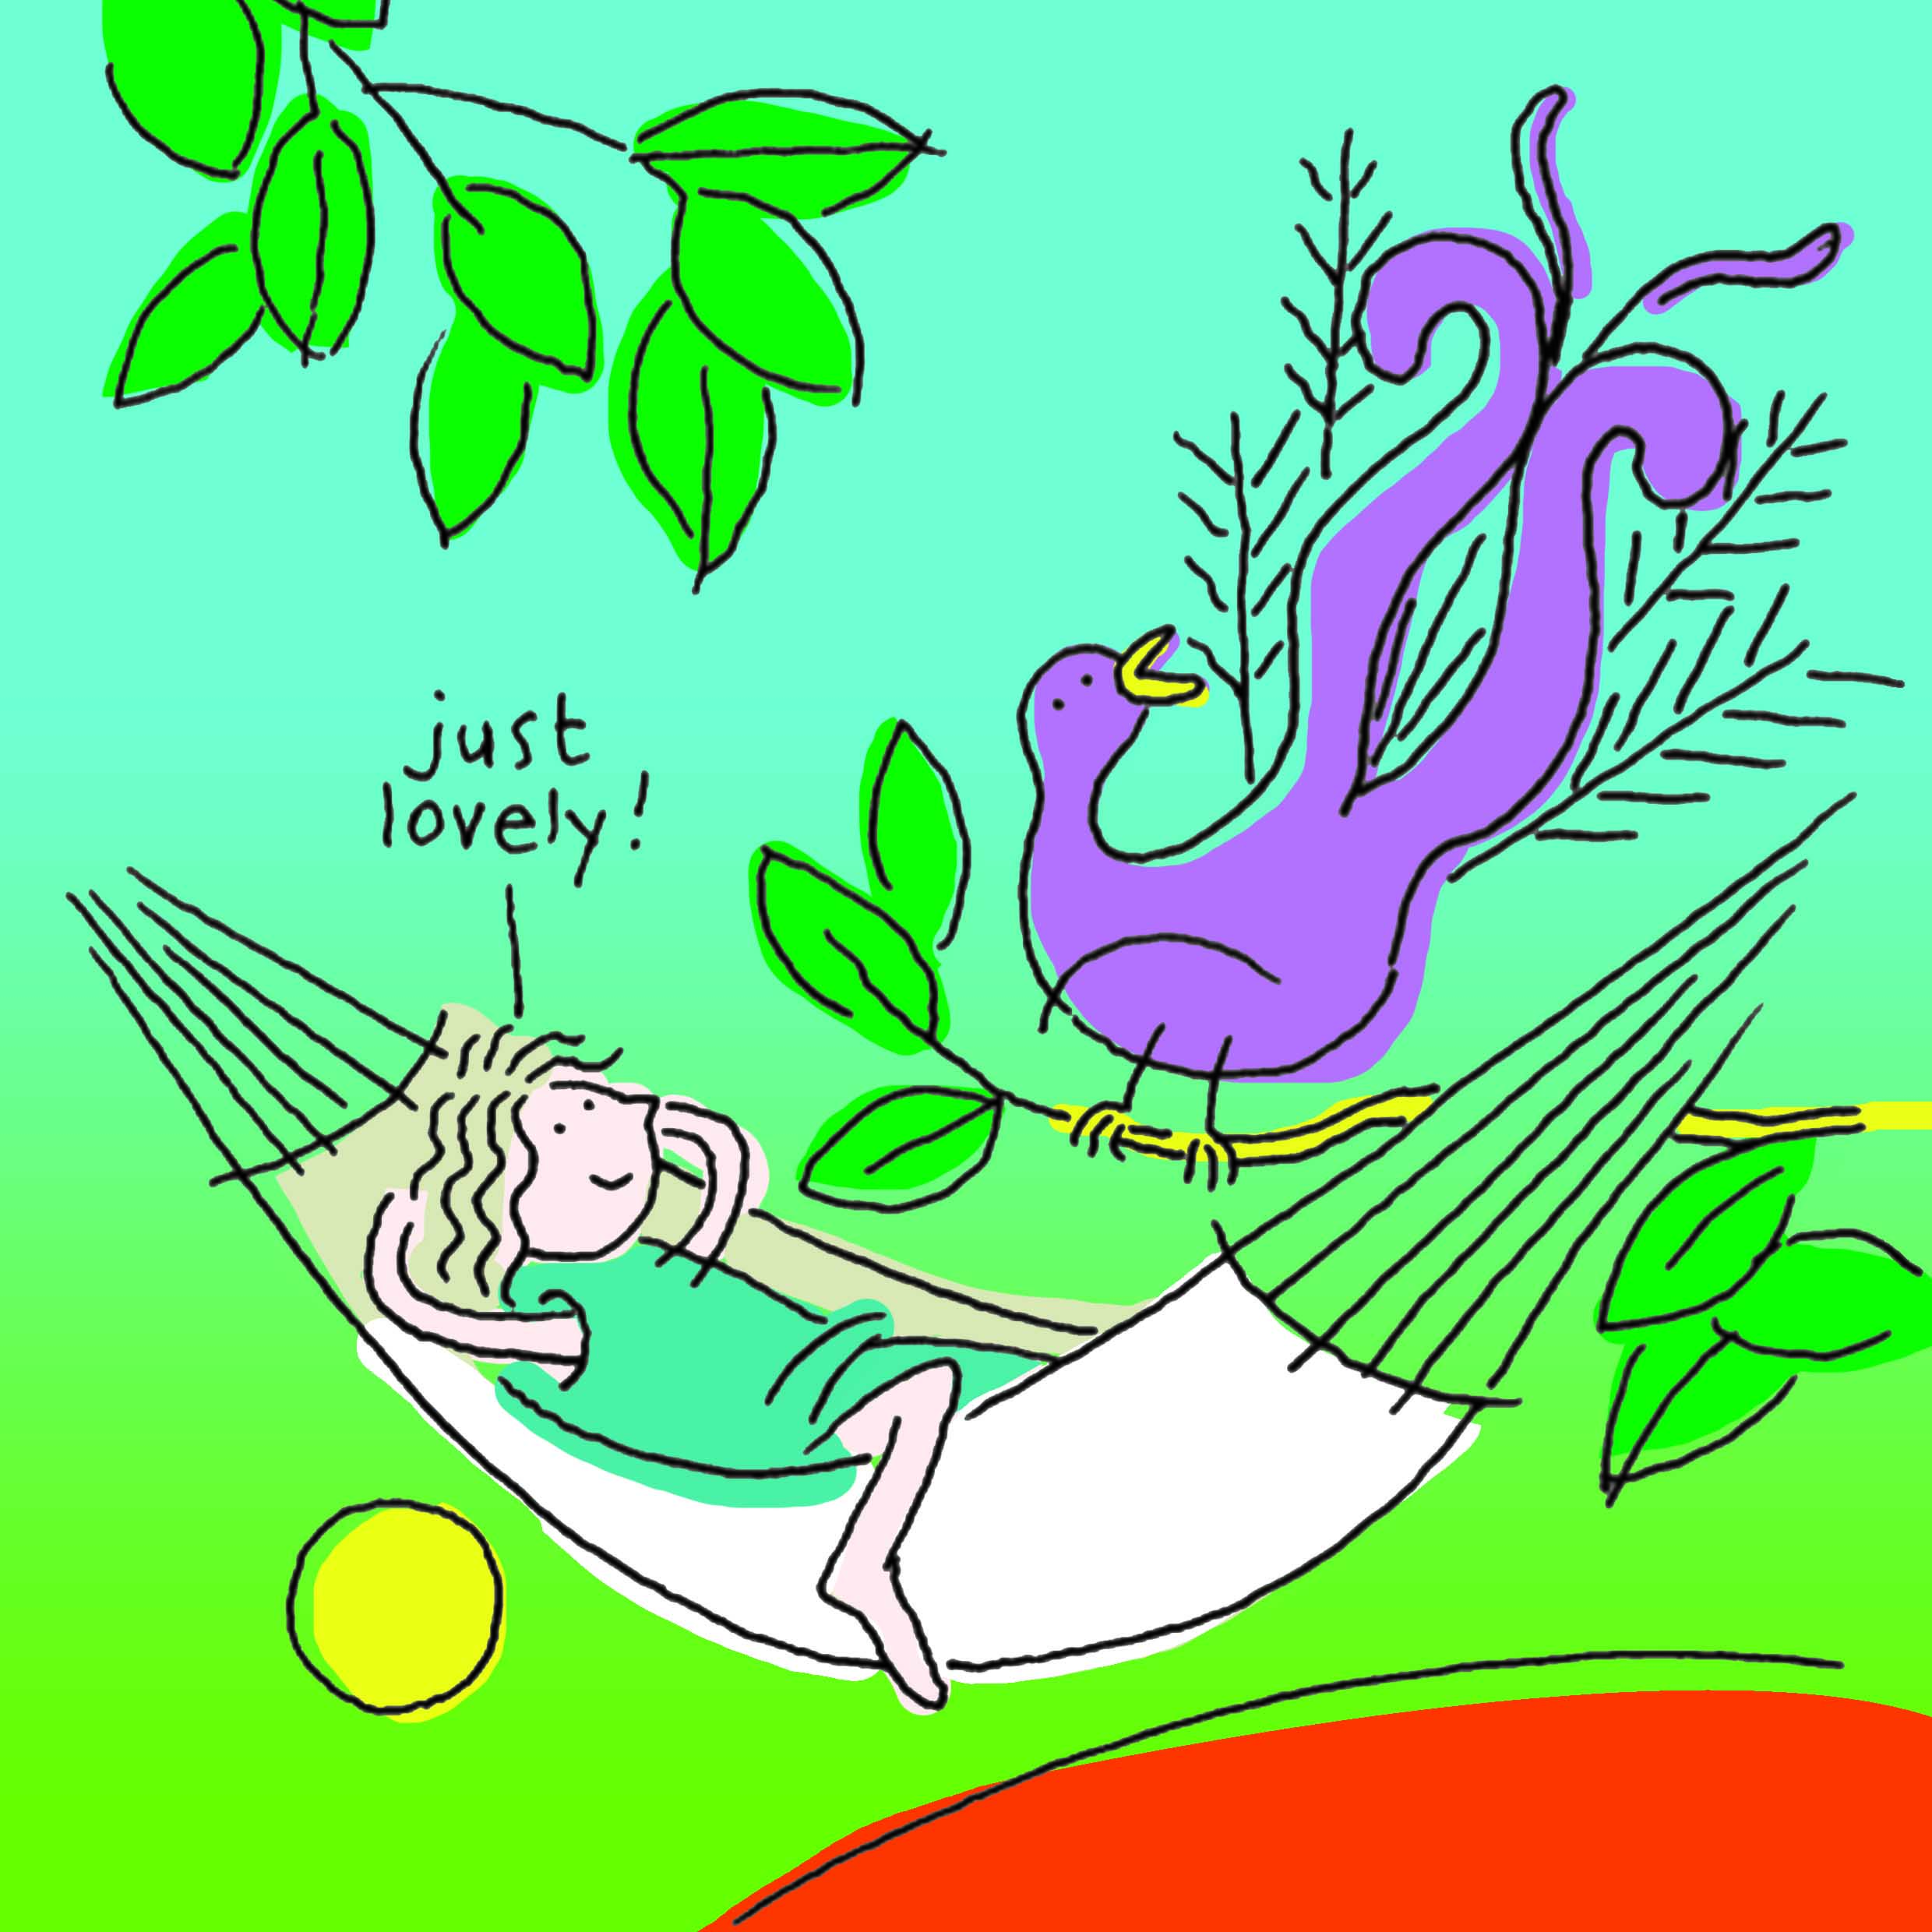 Children's book illustration with a peacock and hammock.